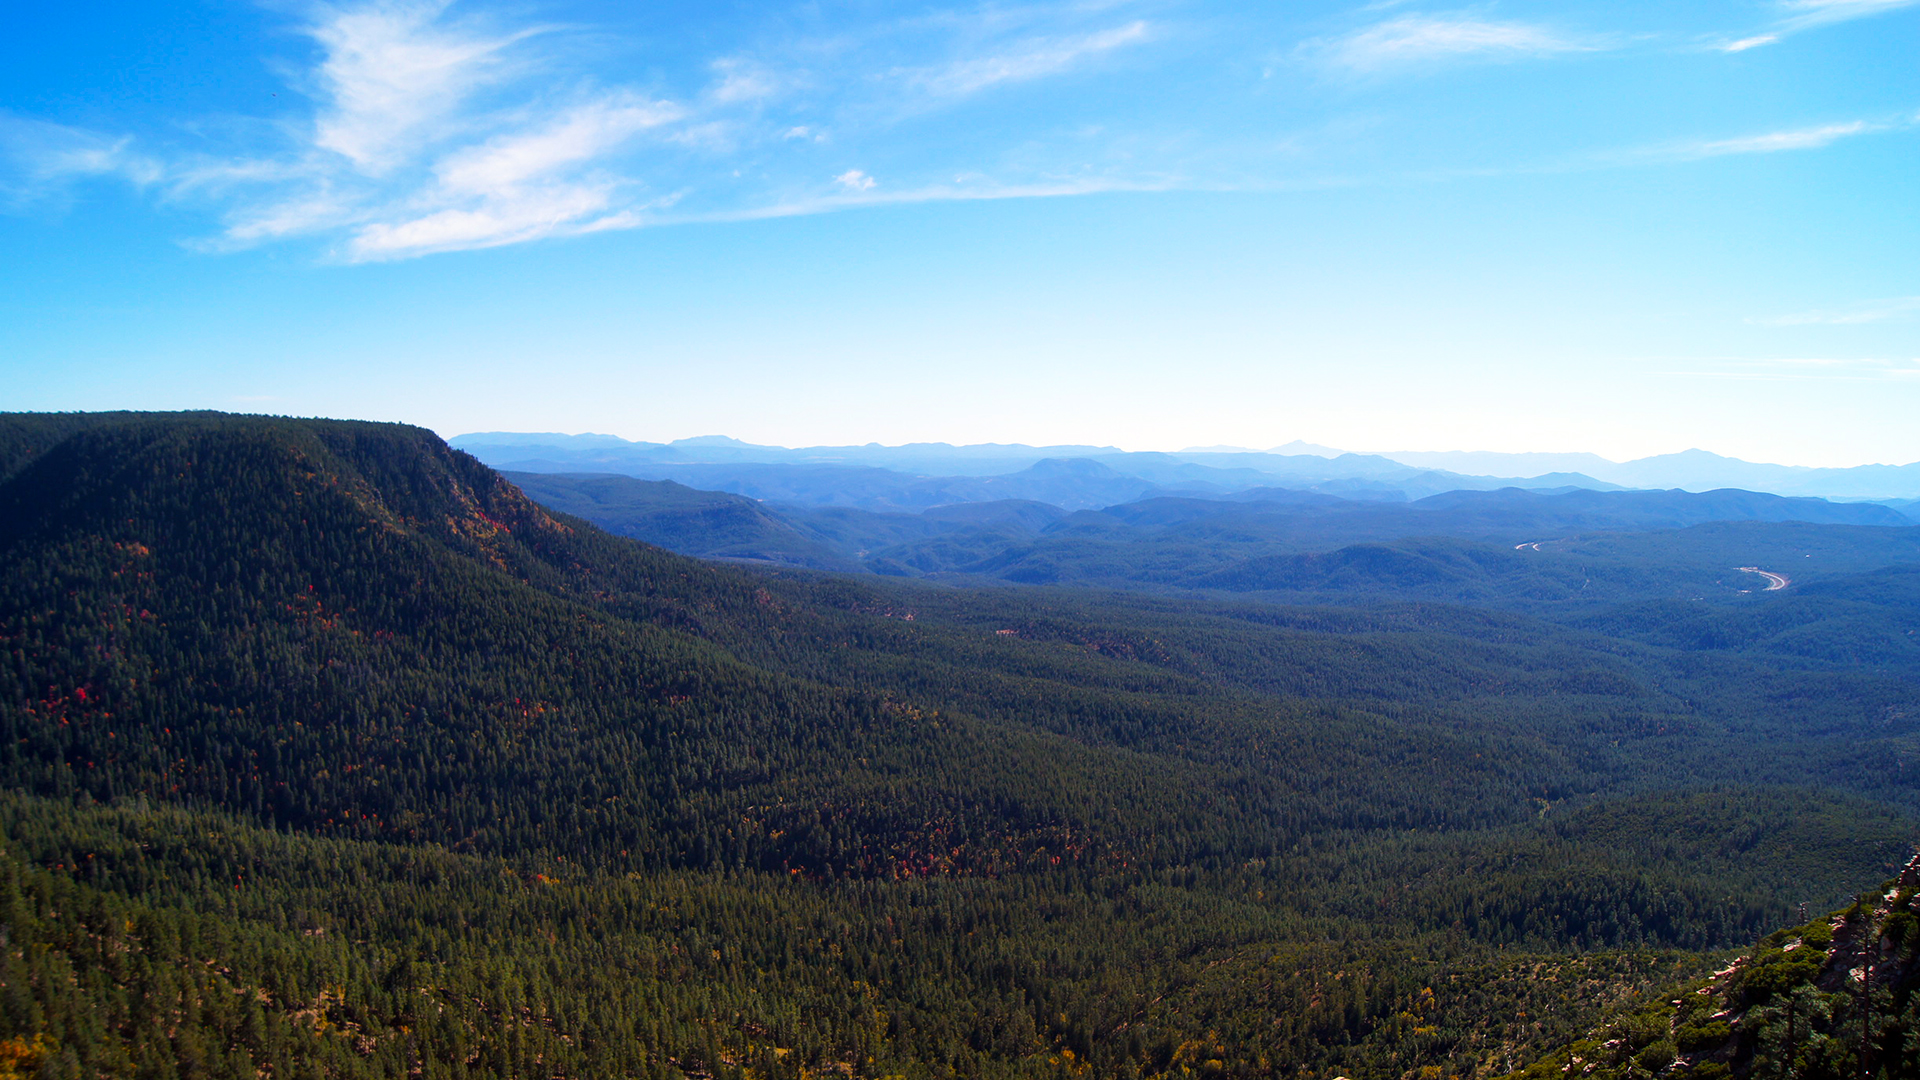 mogollon rim arizona wallpaper 57936